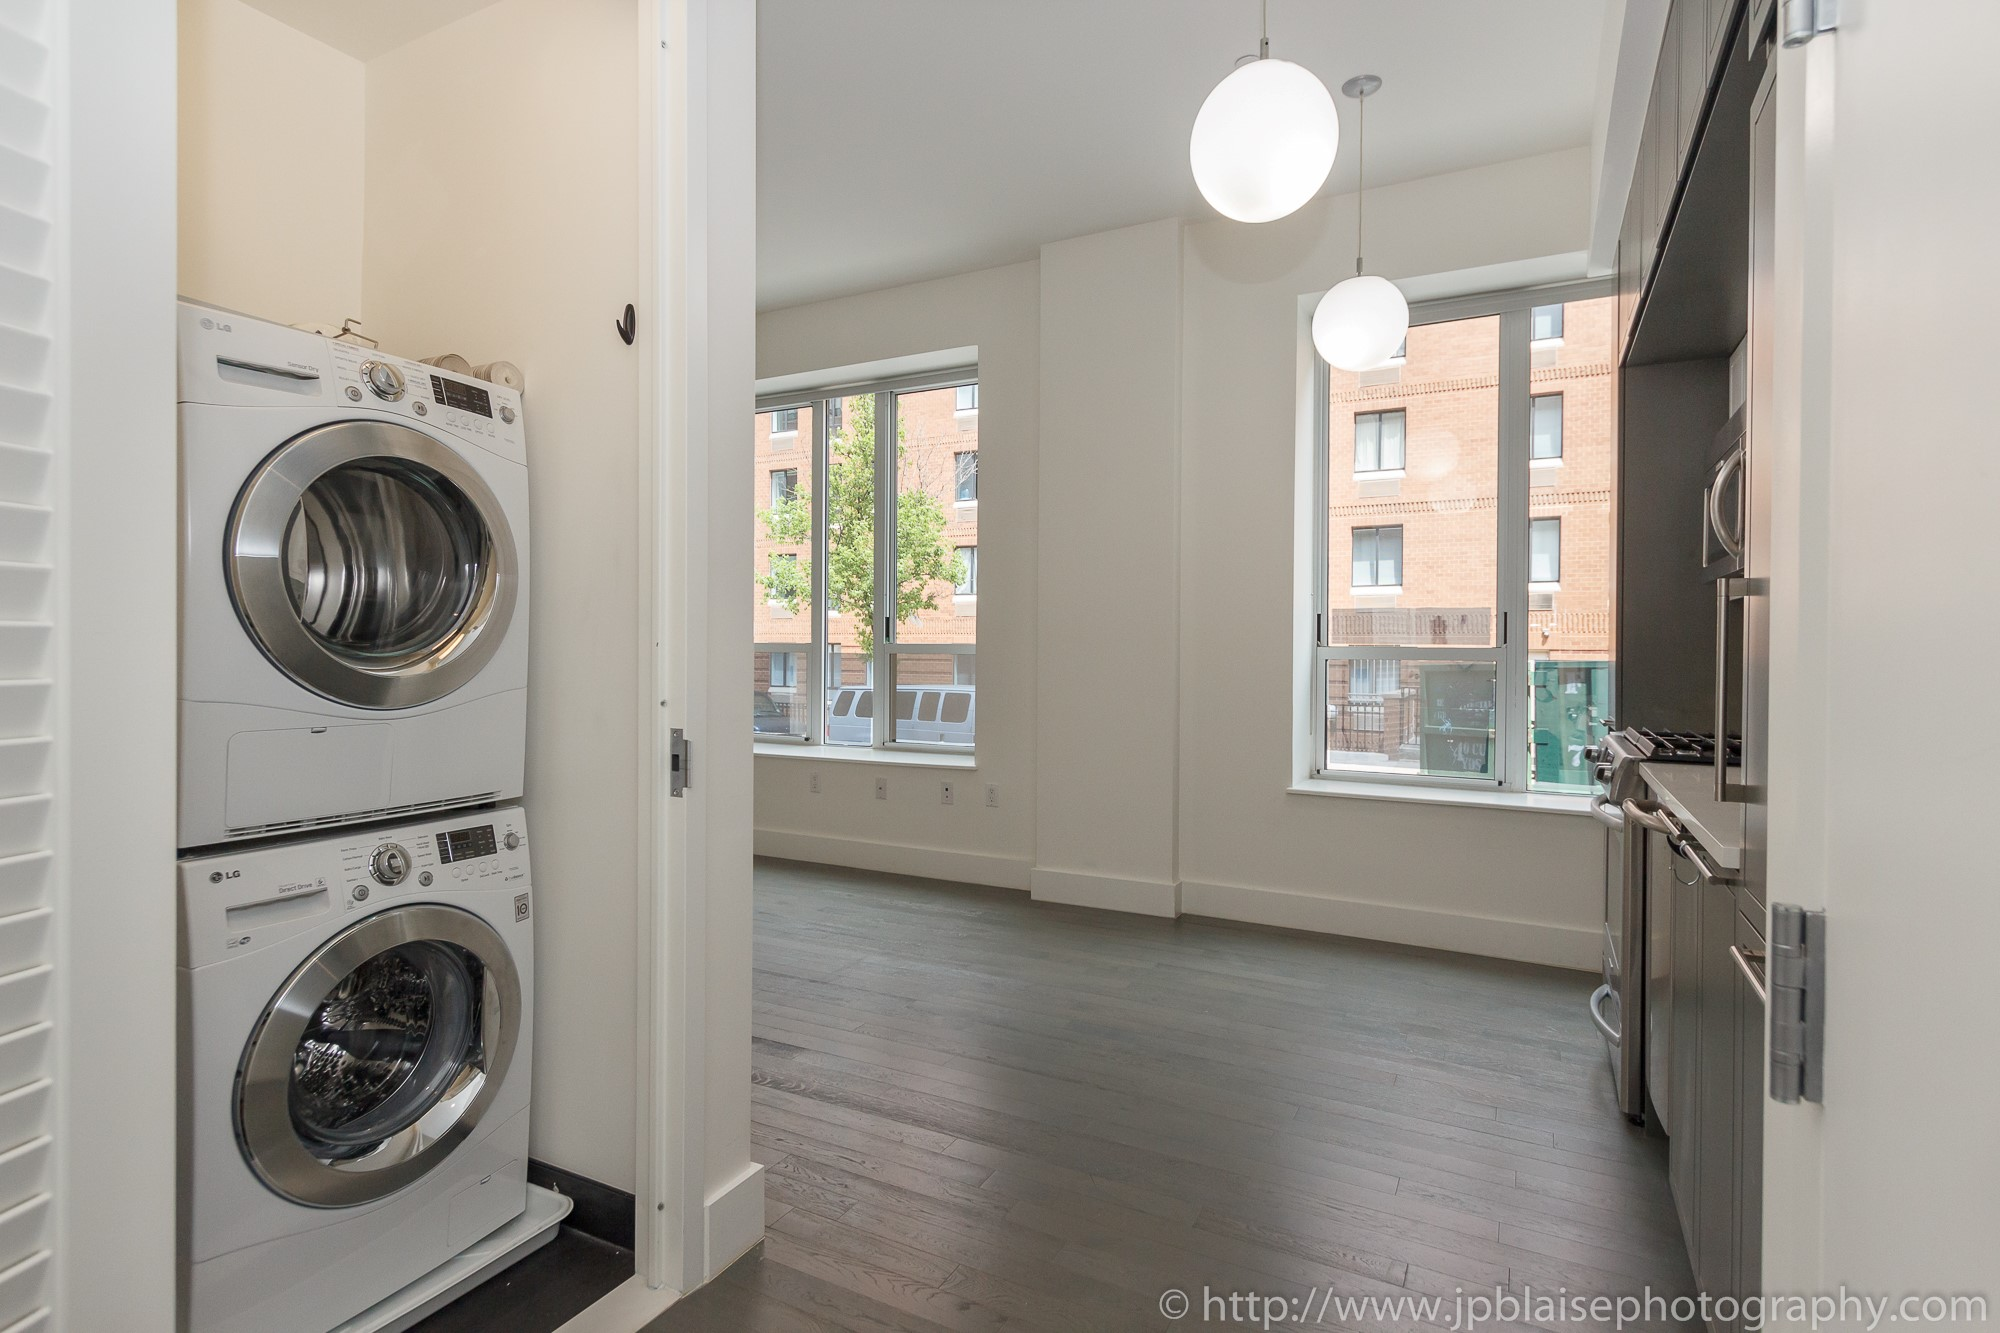 Nyc Apartment Washer Dryer In Unit - Latest BestApartment 2018